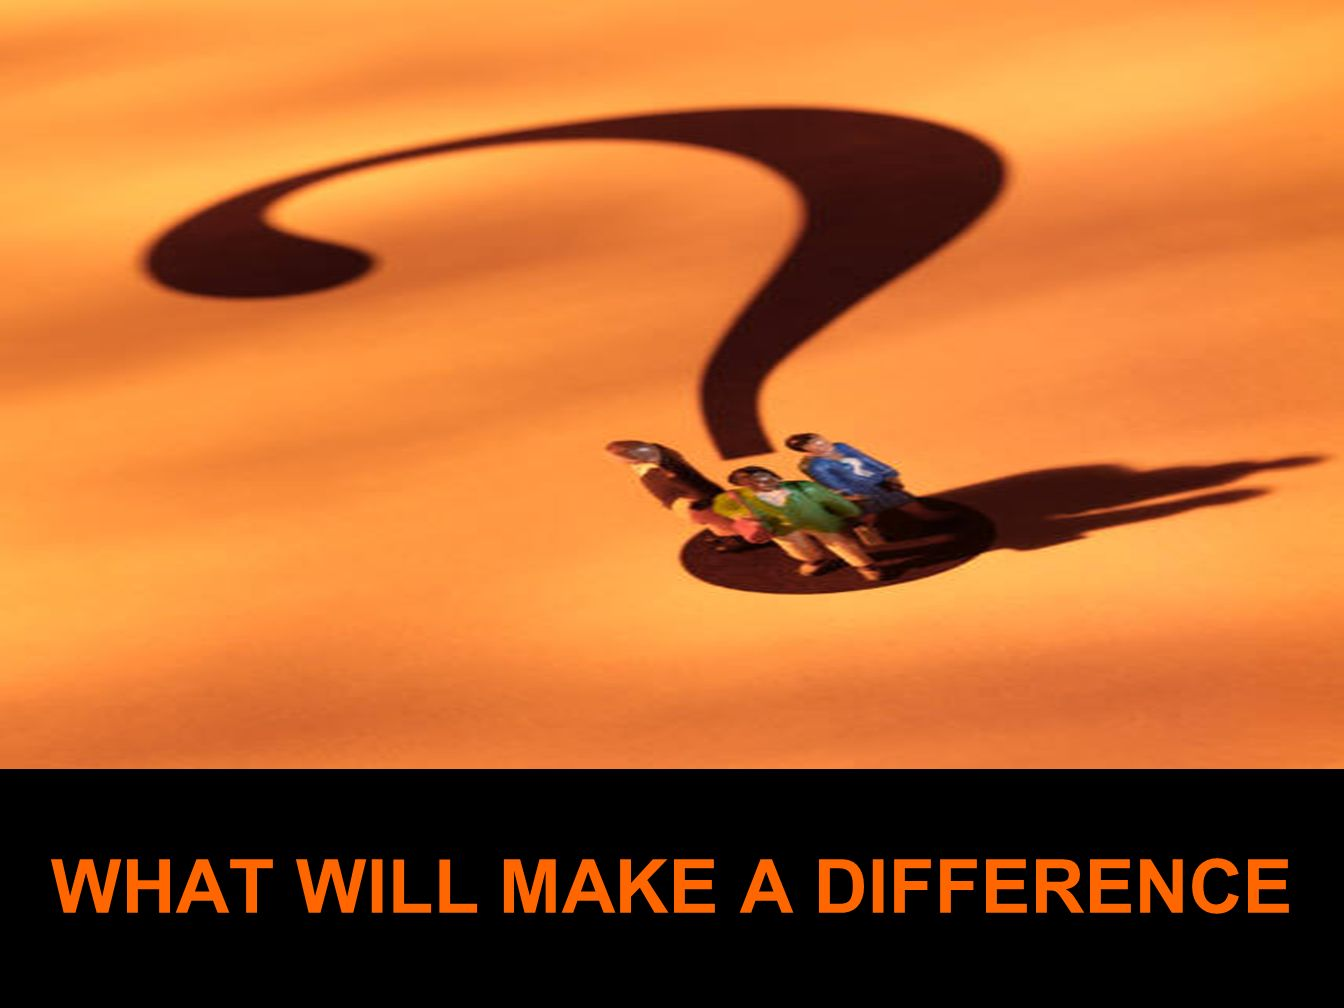 WHAT WILL MAKE A DIFFERENCE